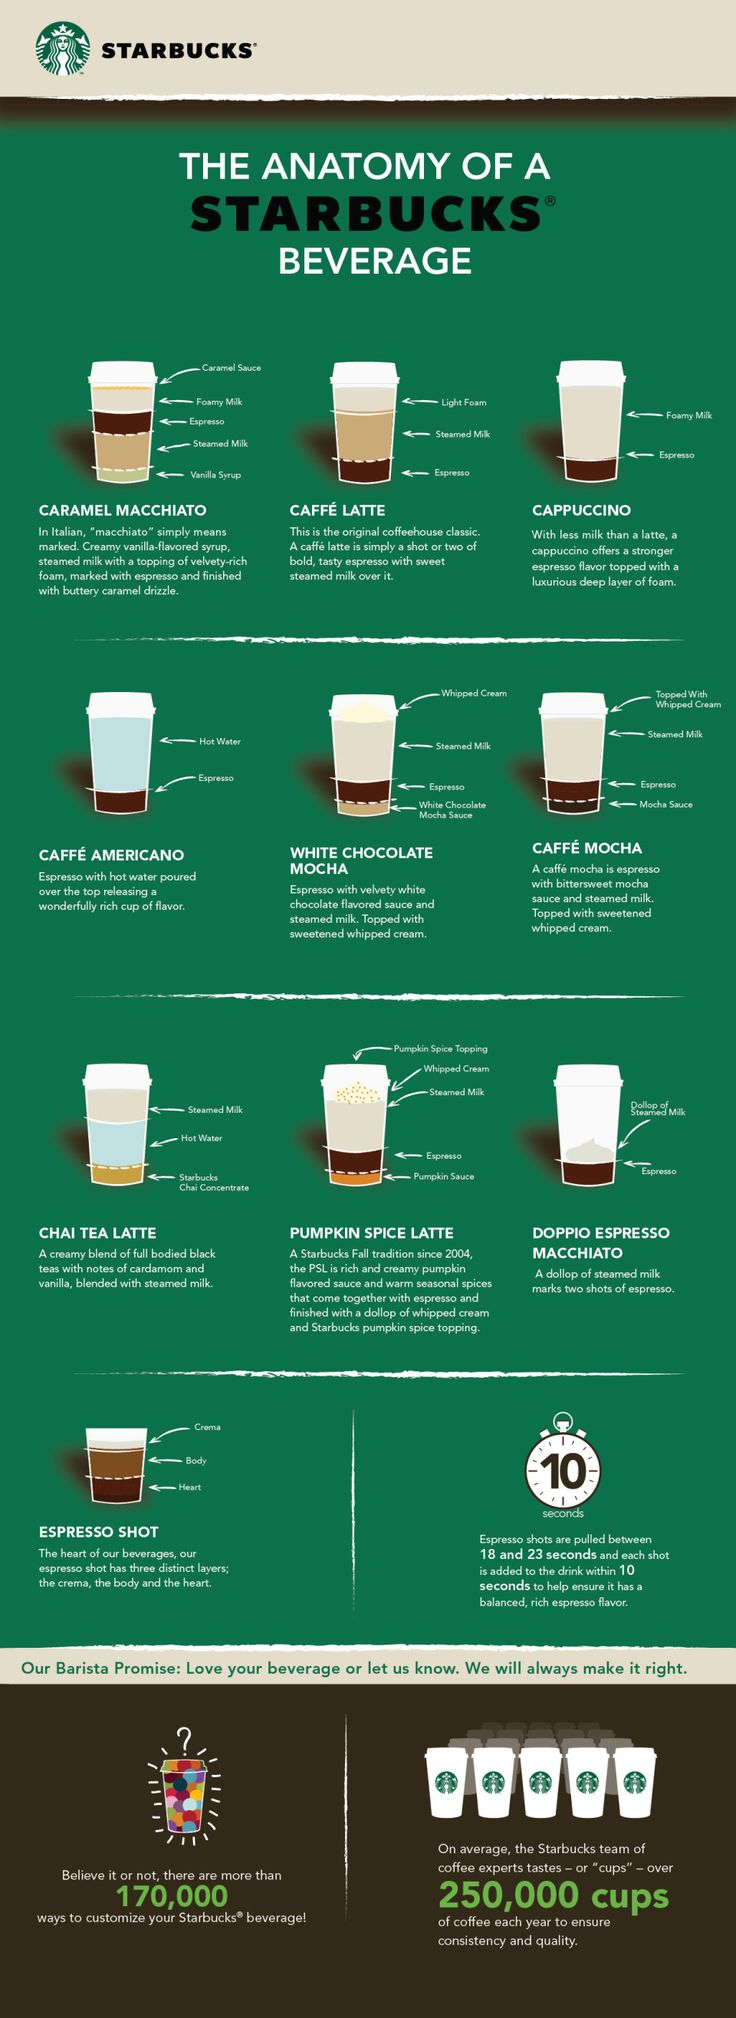 The Anatomy of a Starbucks Beverage #infographic #infografía